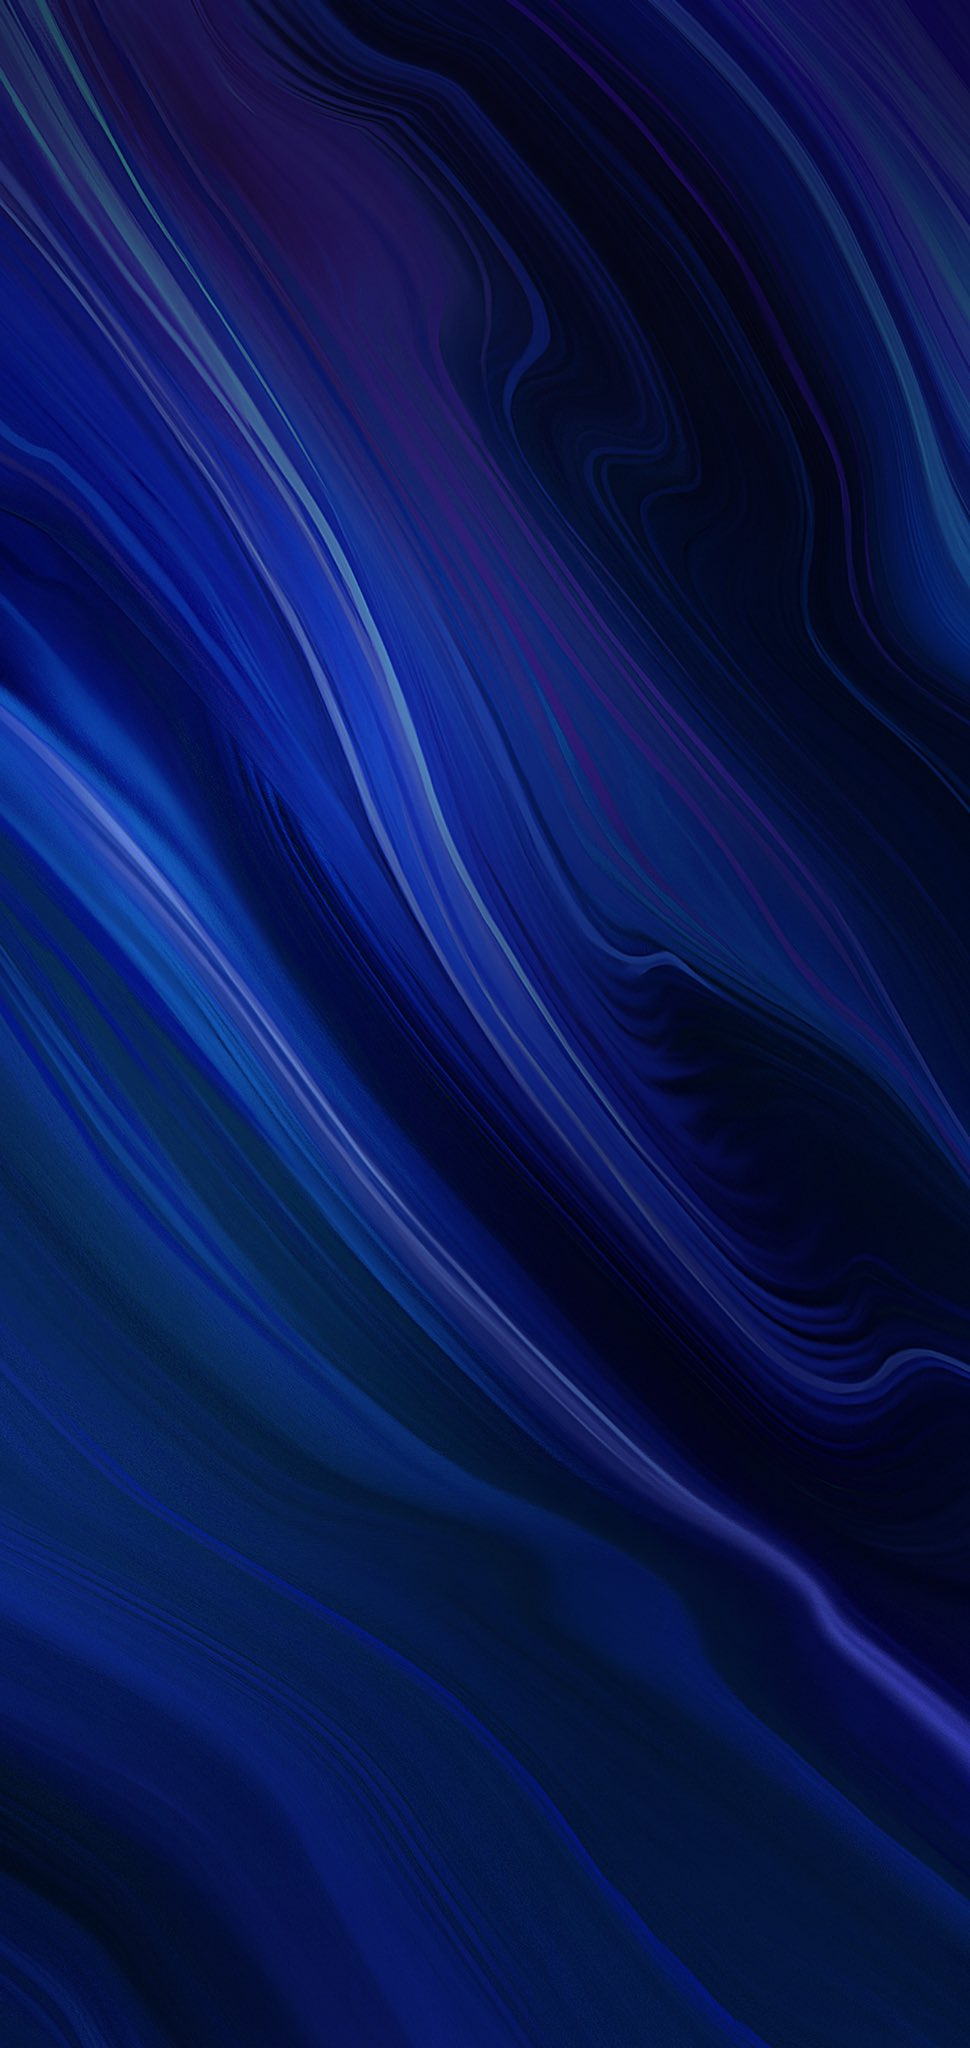 Download these blue wallpapers for iPhone iPad and Mac 970x2048